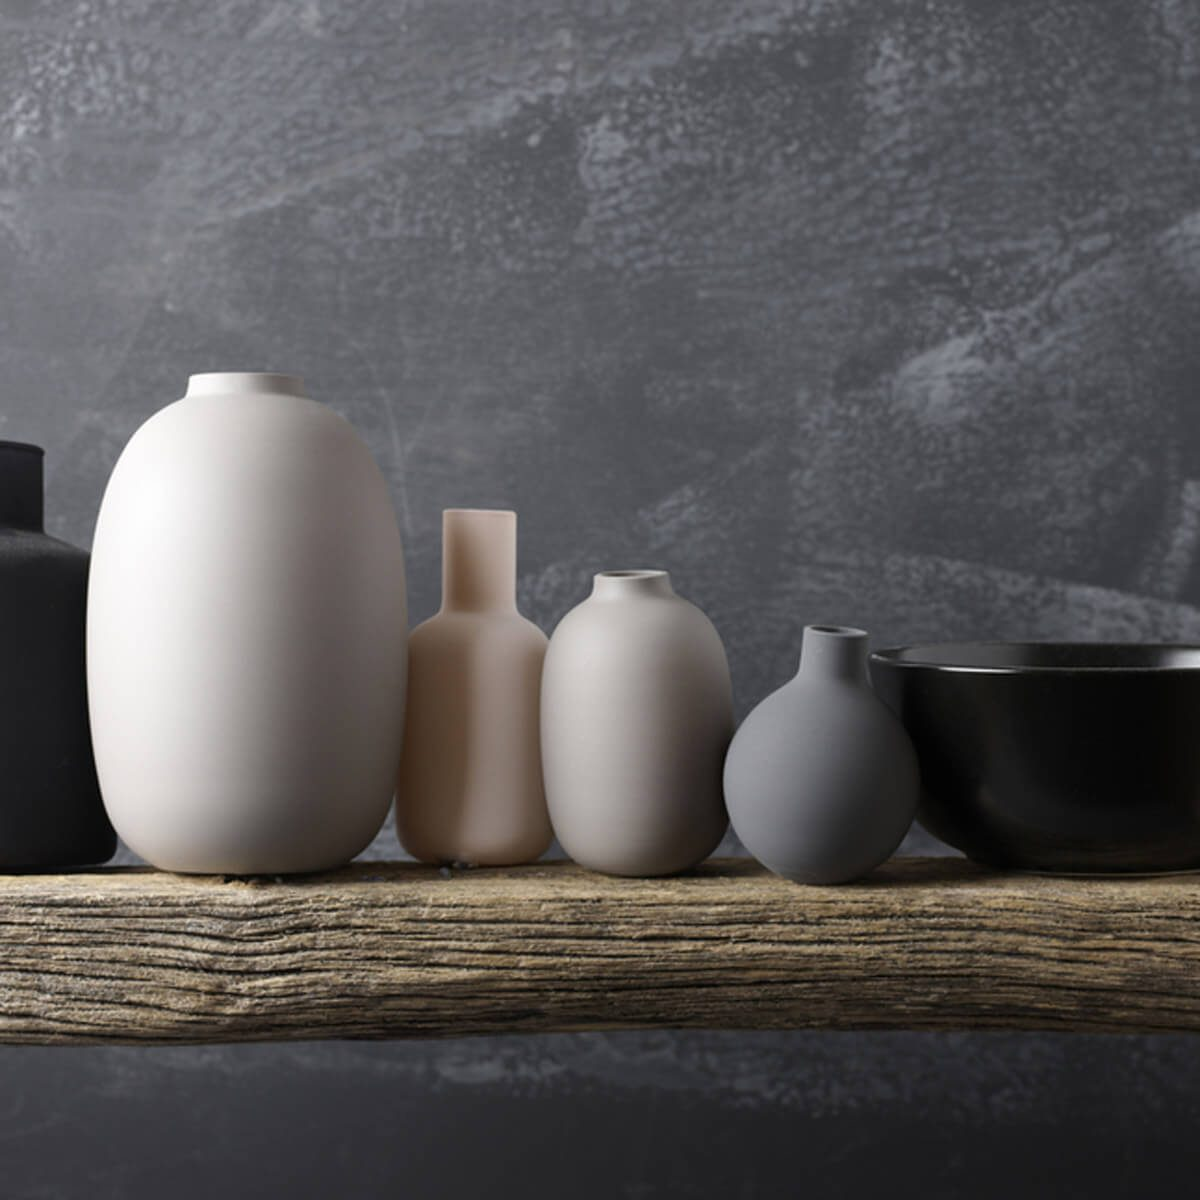 shutterstock_753724045 bowls and vases pottery